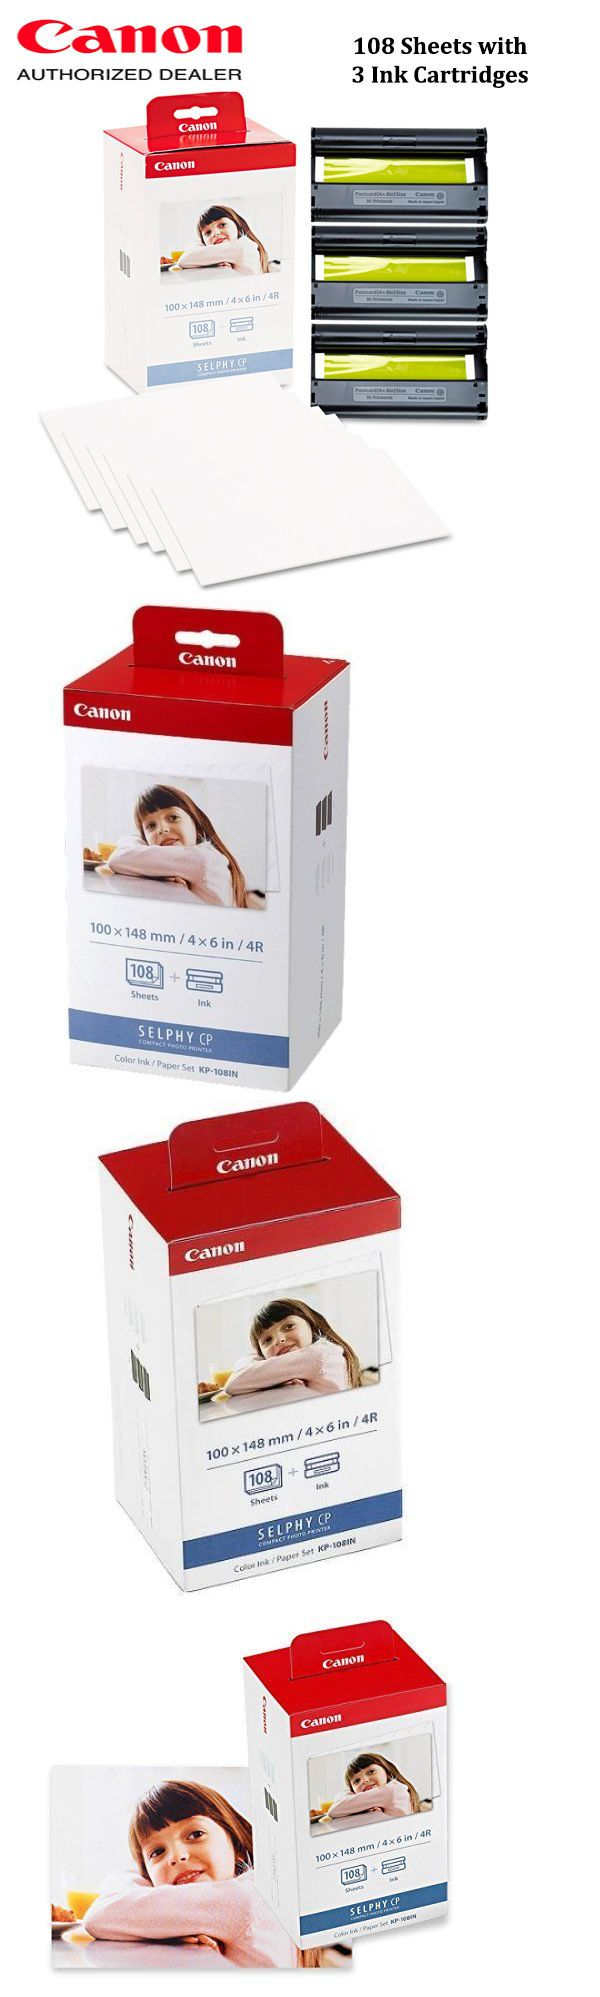 NEW Canon KP-108IN Color Ink and Paper Set 108 Sheets with 3 Ink Cassettes